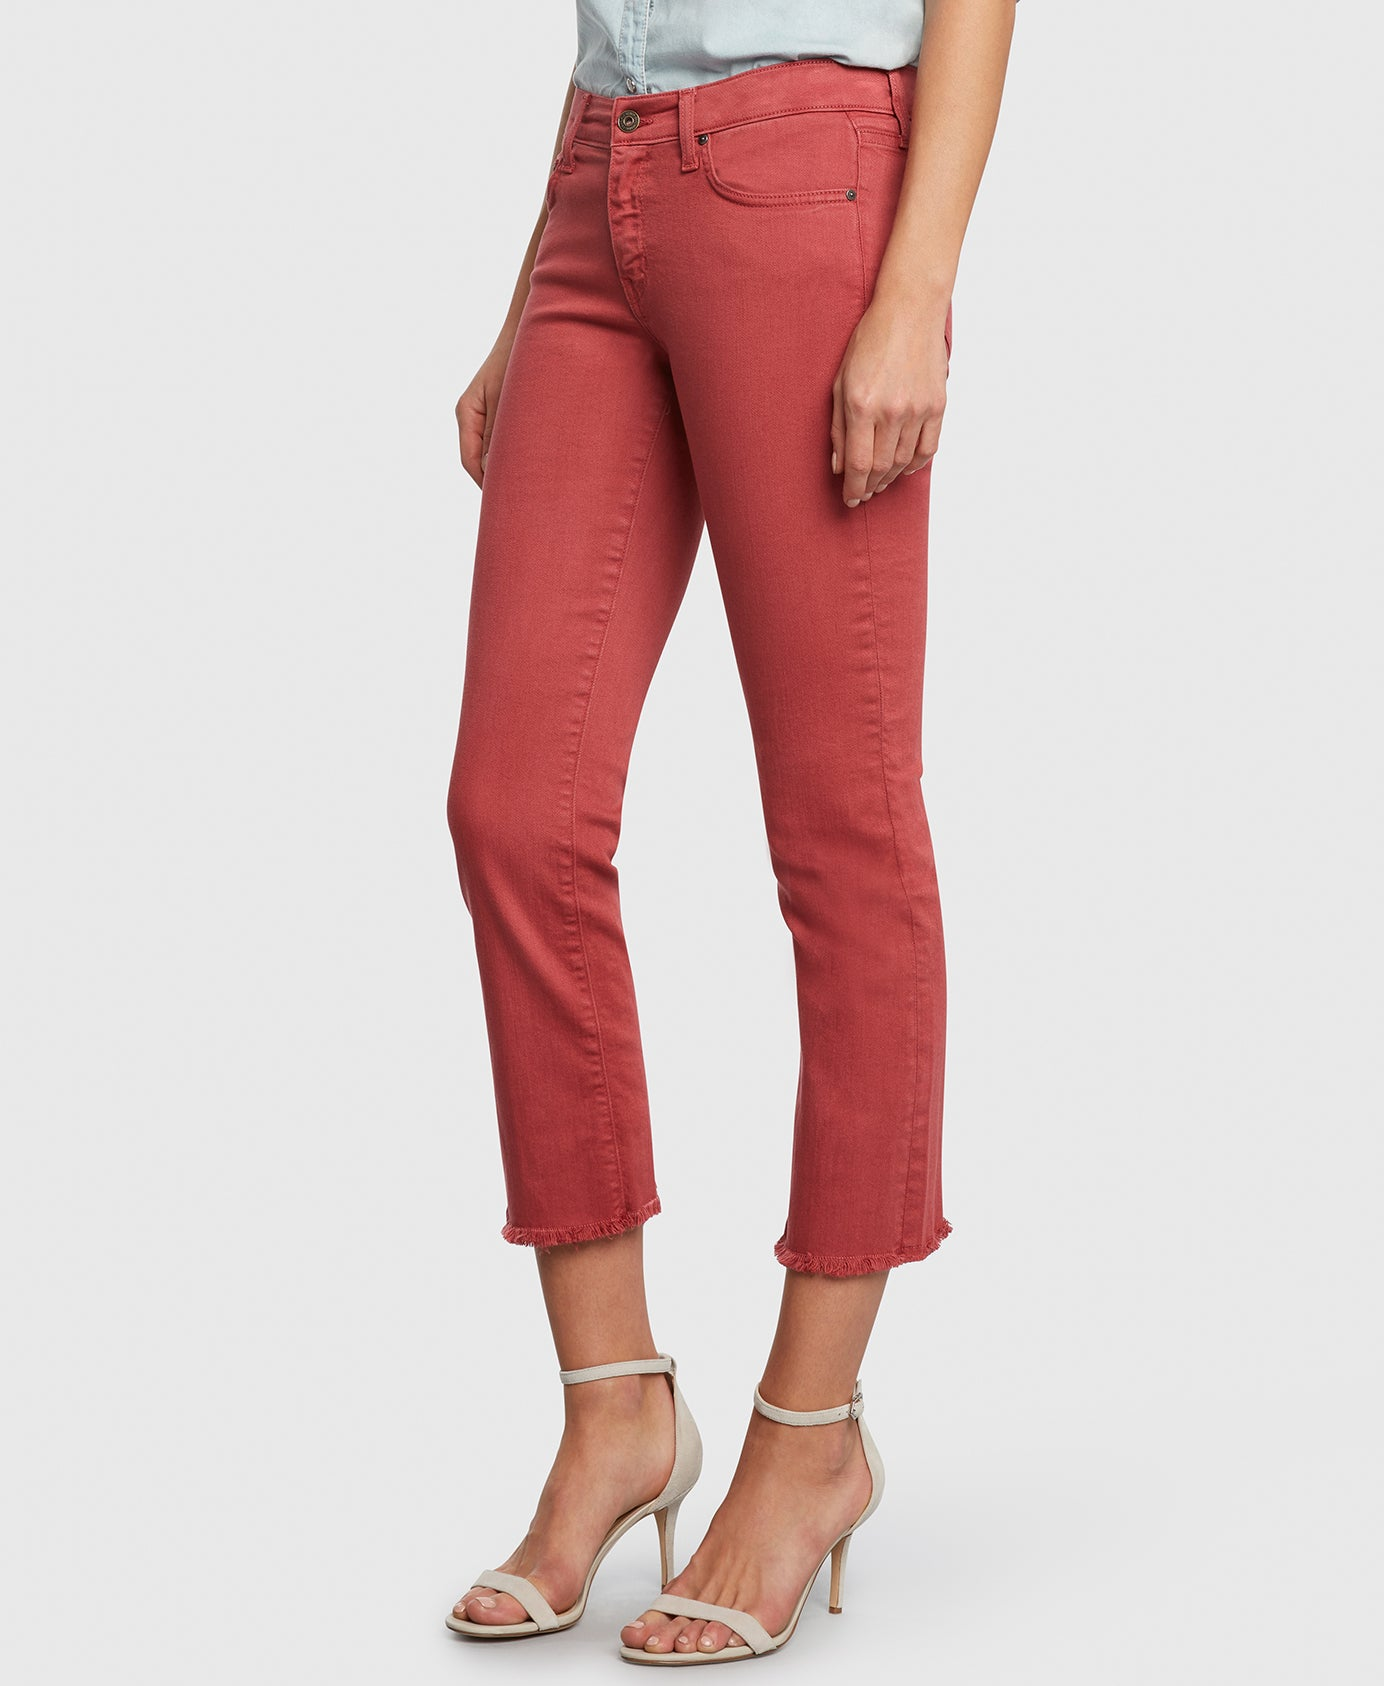 Principle OPTIMIST in Nantucket red denim detail